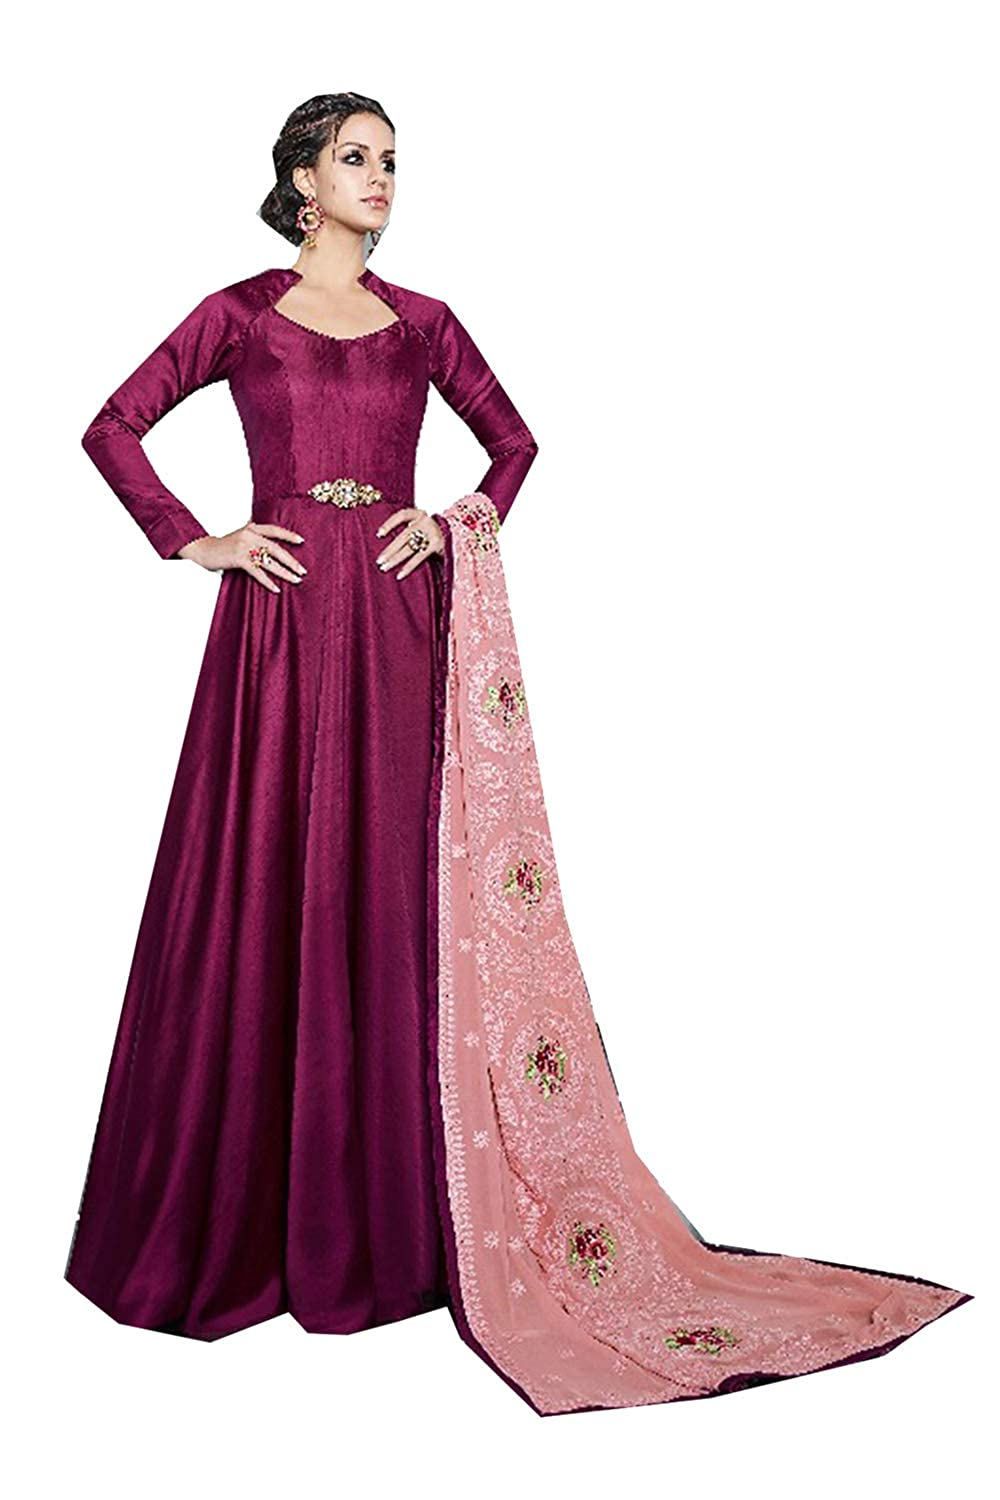 Dessa Collections Readymade Indian Women Designer Partywear Ethnic Traditonal Dress. ICW1830-1